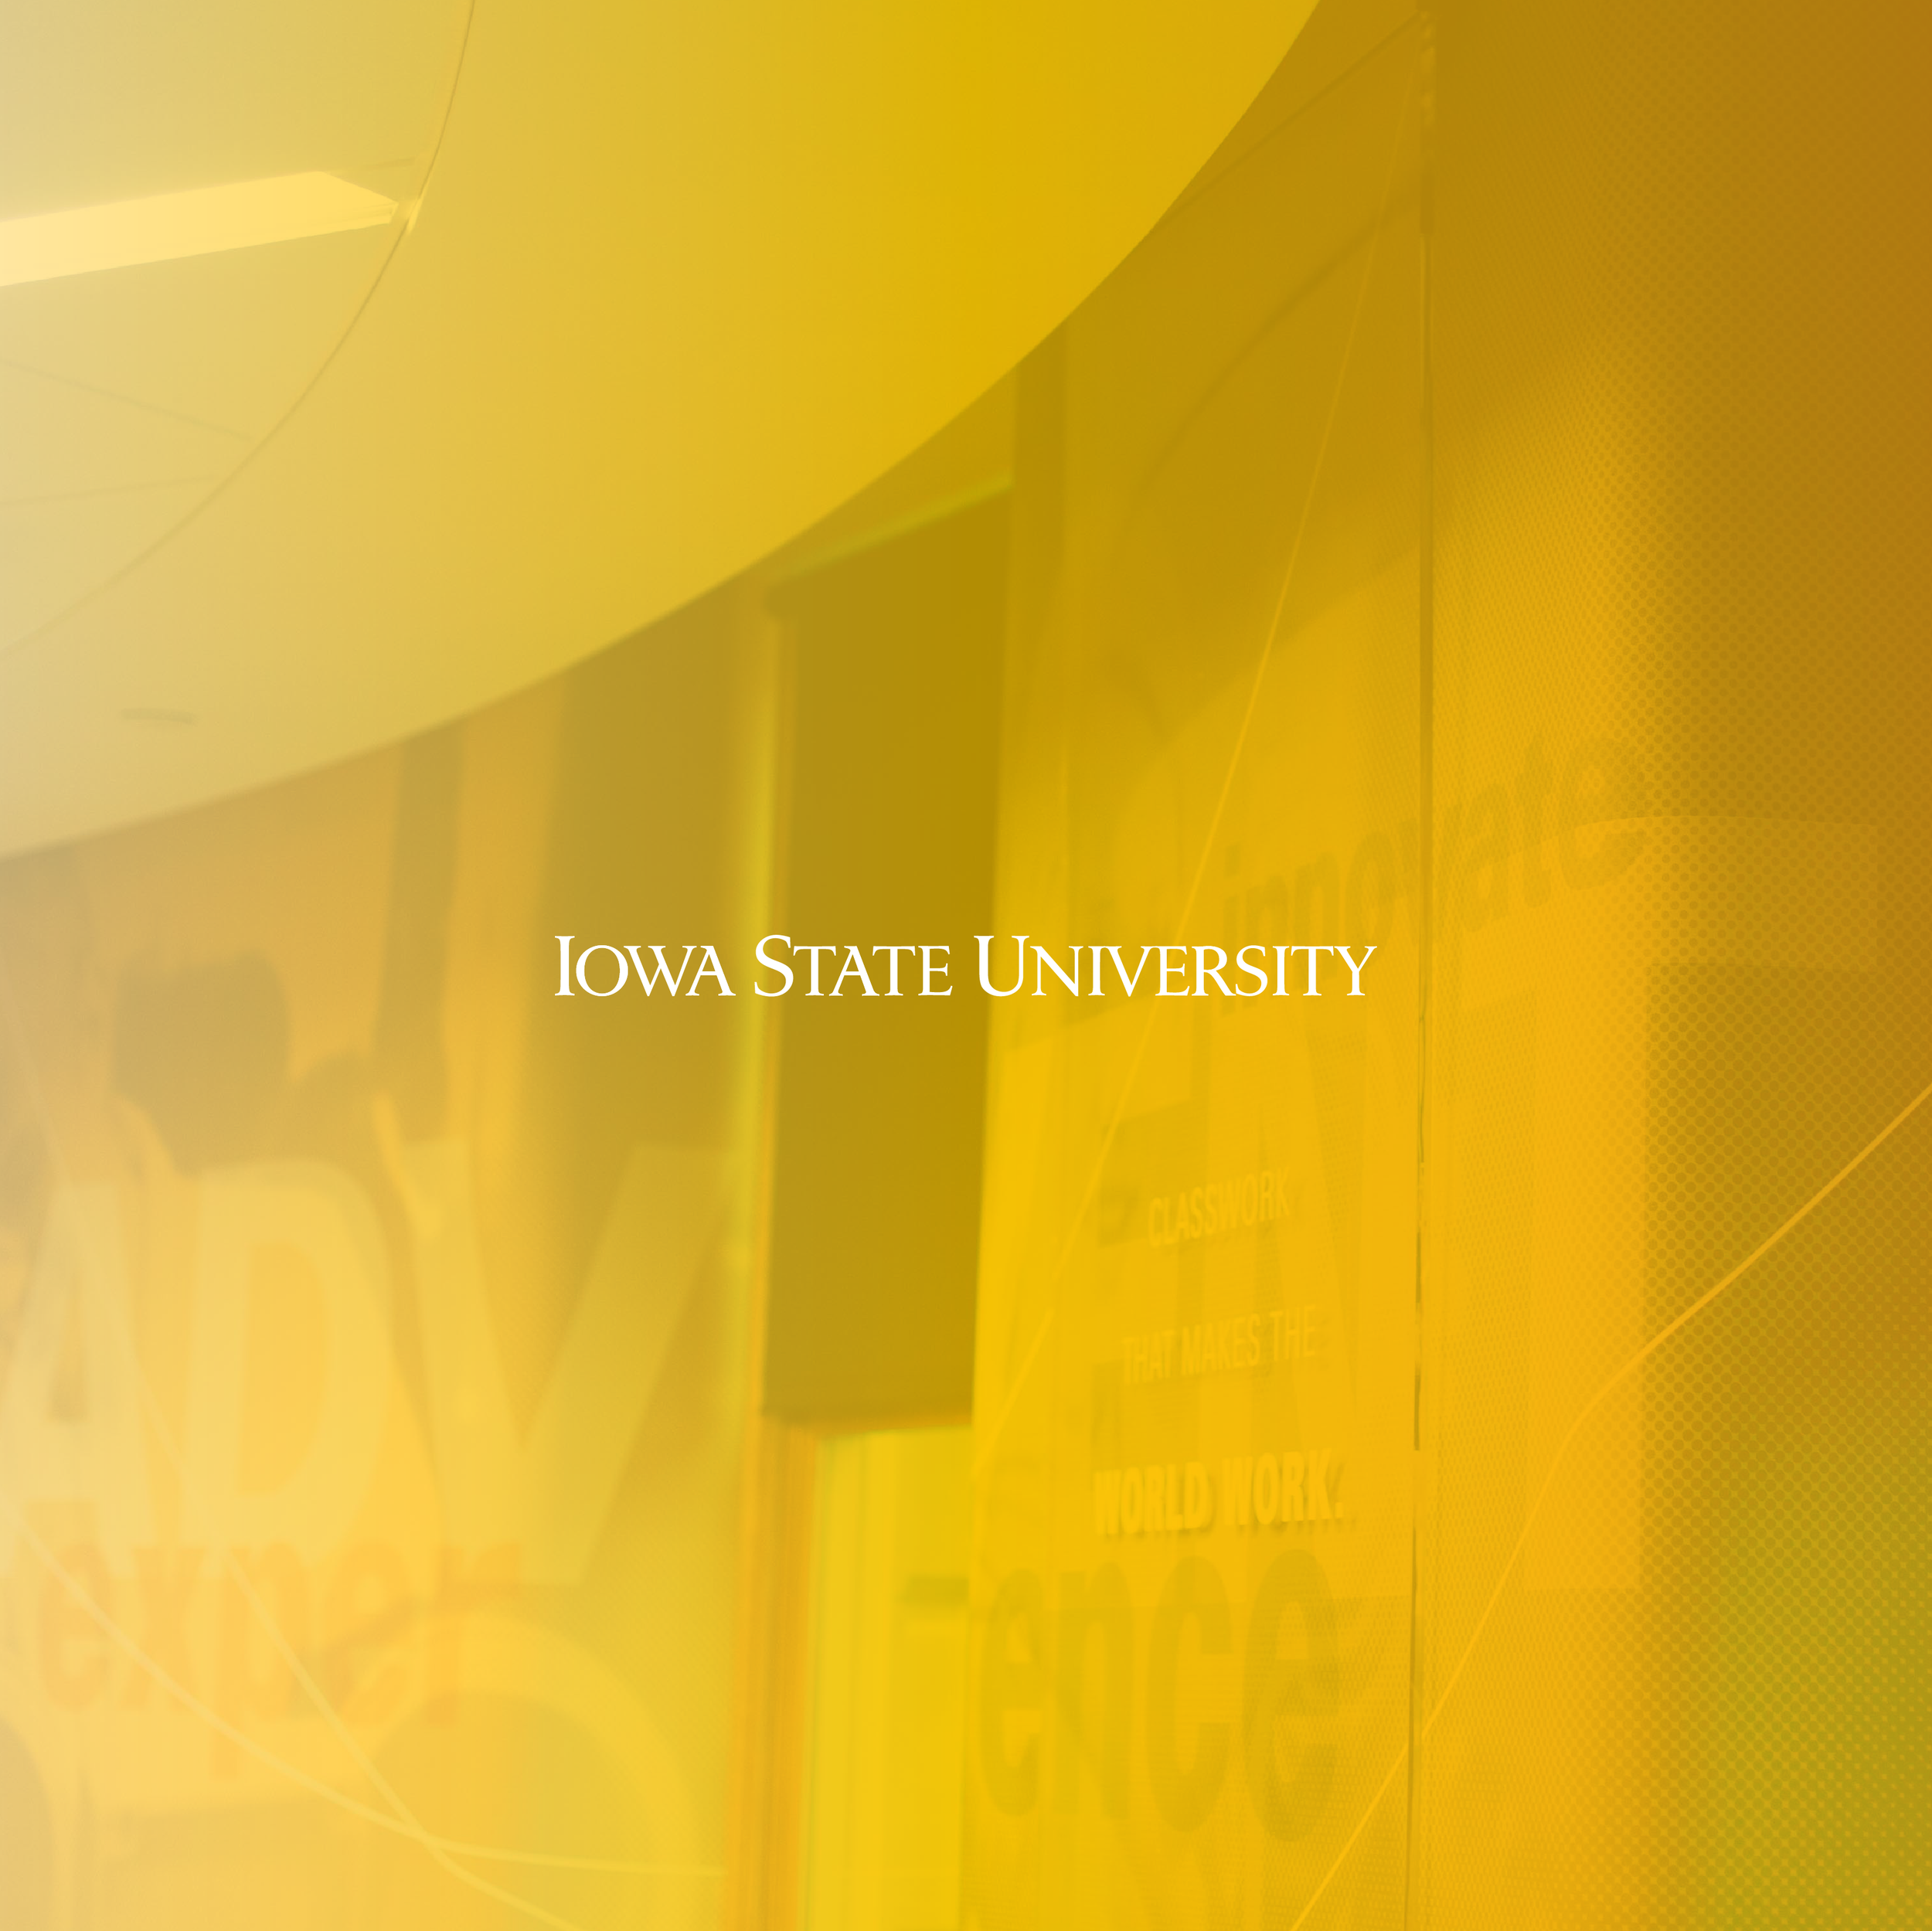 Iowa State University Environmental Design